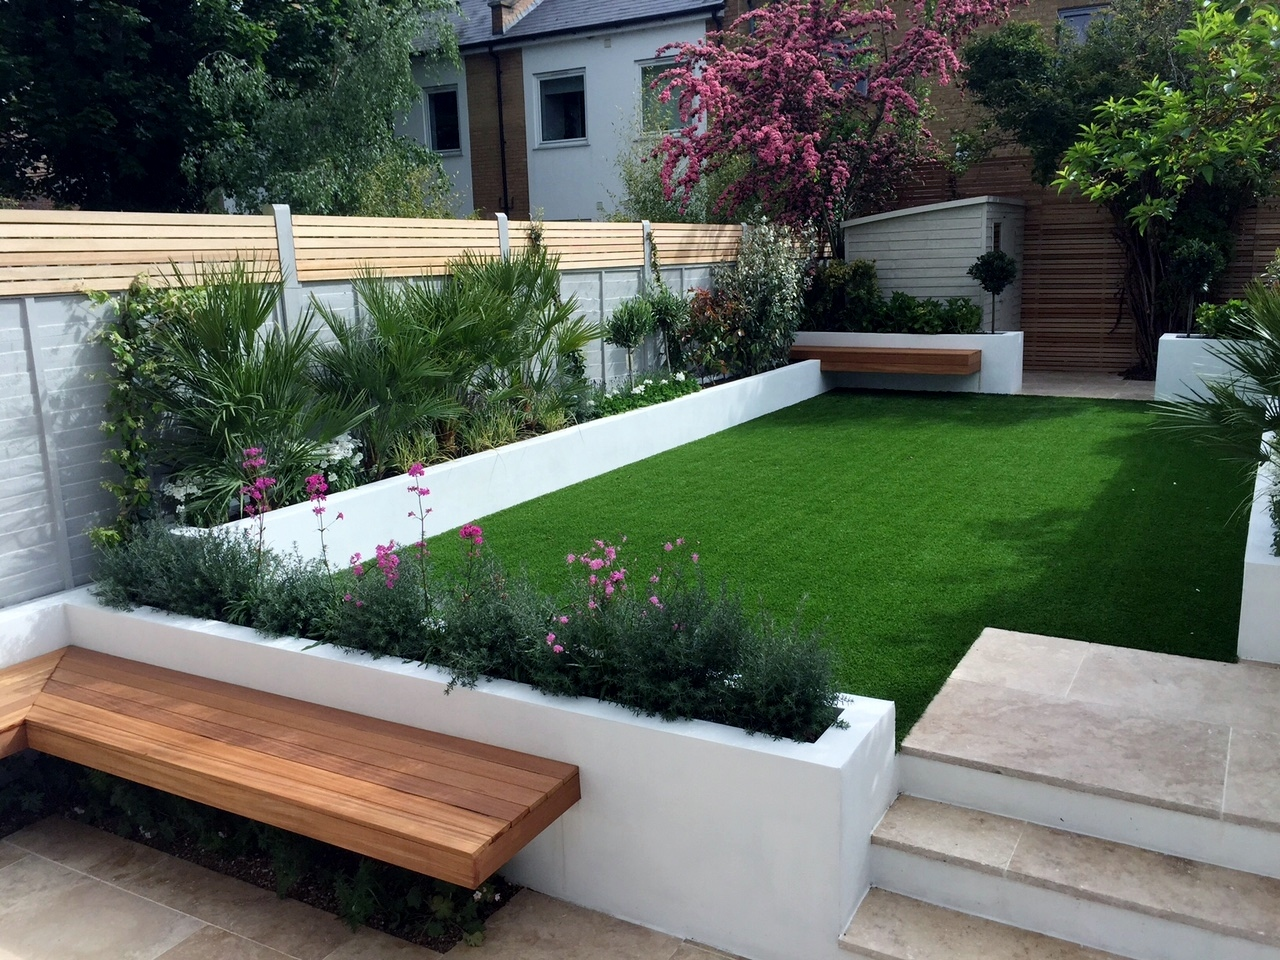 Modern garden design ideas Fulham Chelsea Battersea ... on Backyard Patio Layout id=31497